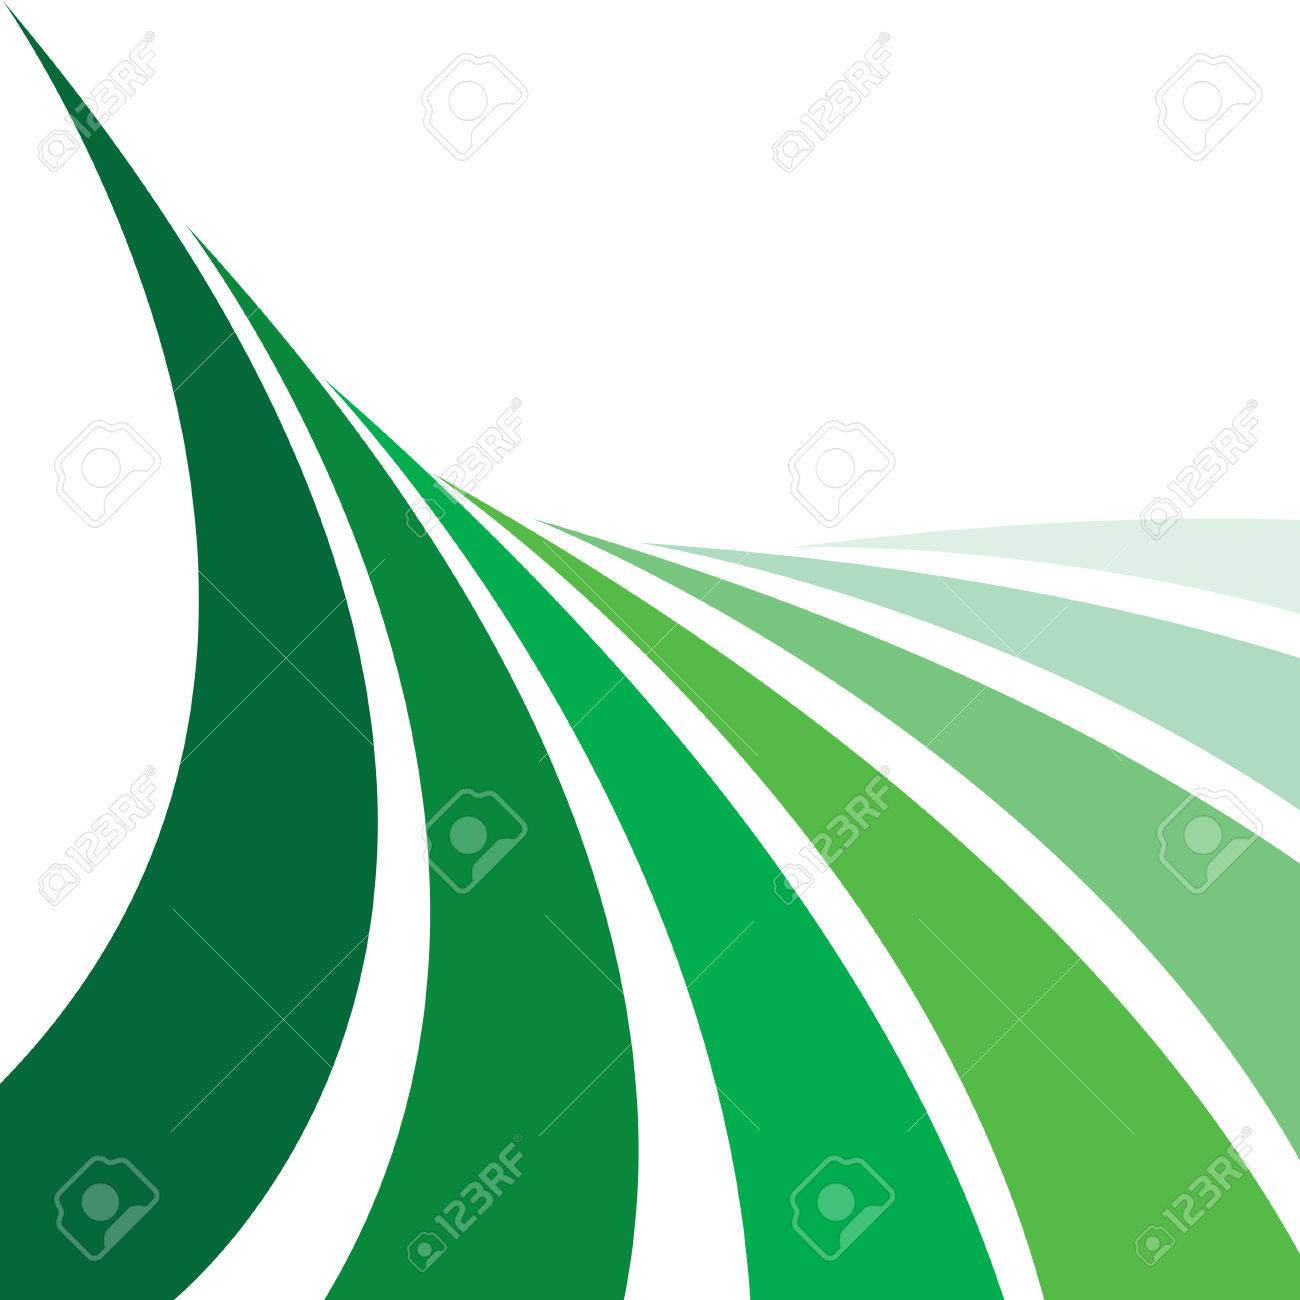 An abstract design layout that looks like farmland with rows of crops. This vector image makes a great background. Stock Vector - 4113499